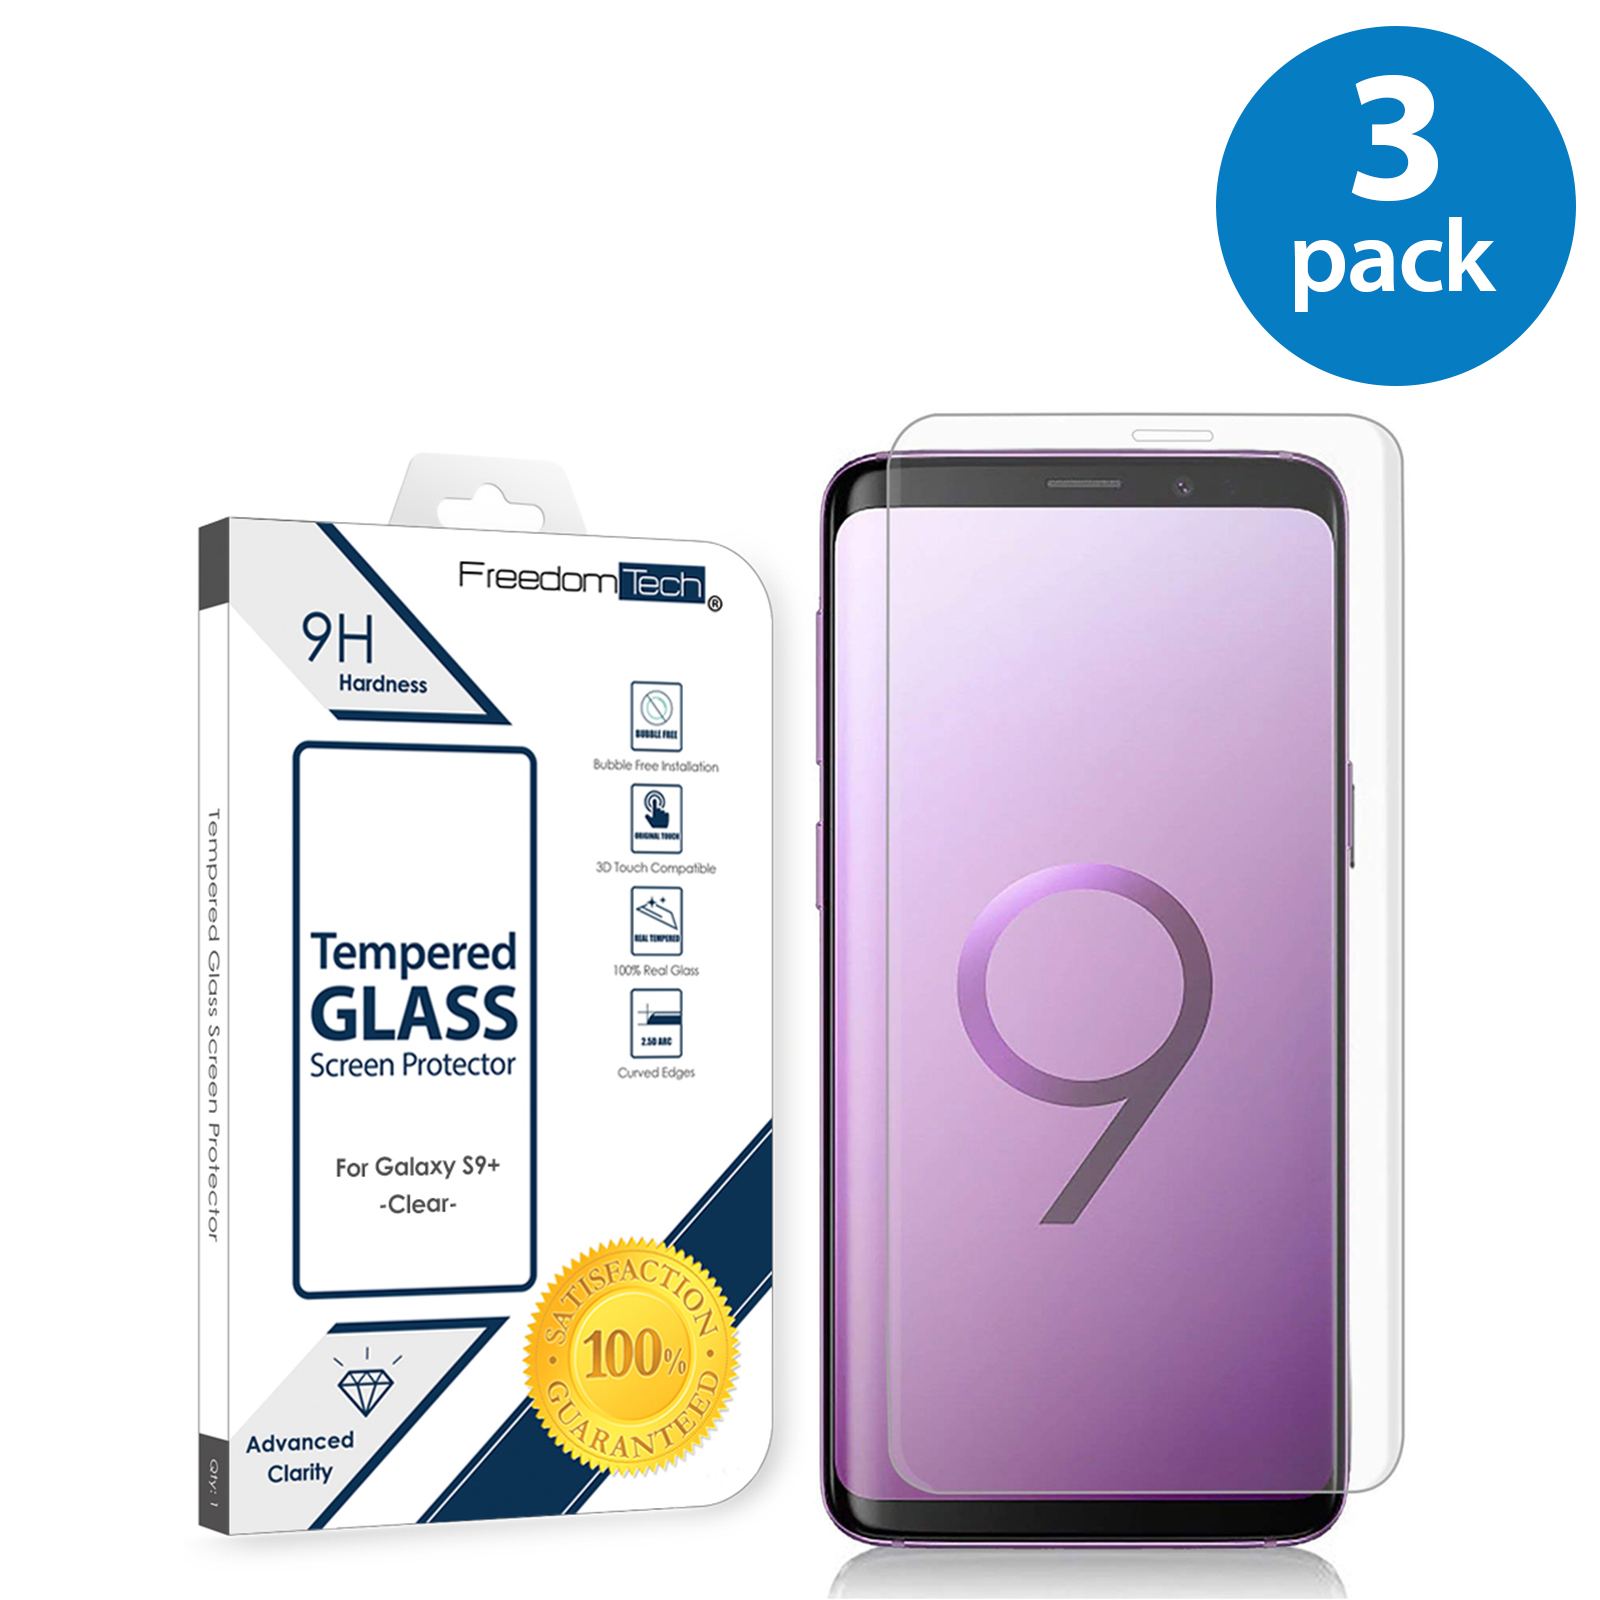 3x Samsung Galaxy S9 Plus Screen Protector Glass Film Full Cover 3D Curved Case Friendly Screen Protector Tempered Glass for Samsung Galaxy S9 Plus Clear